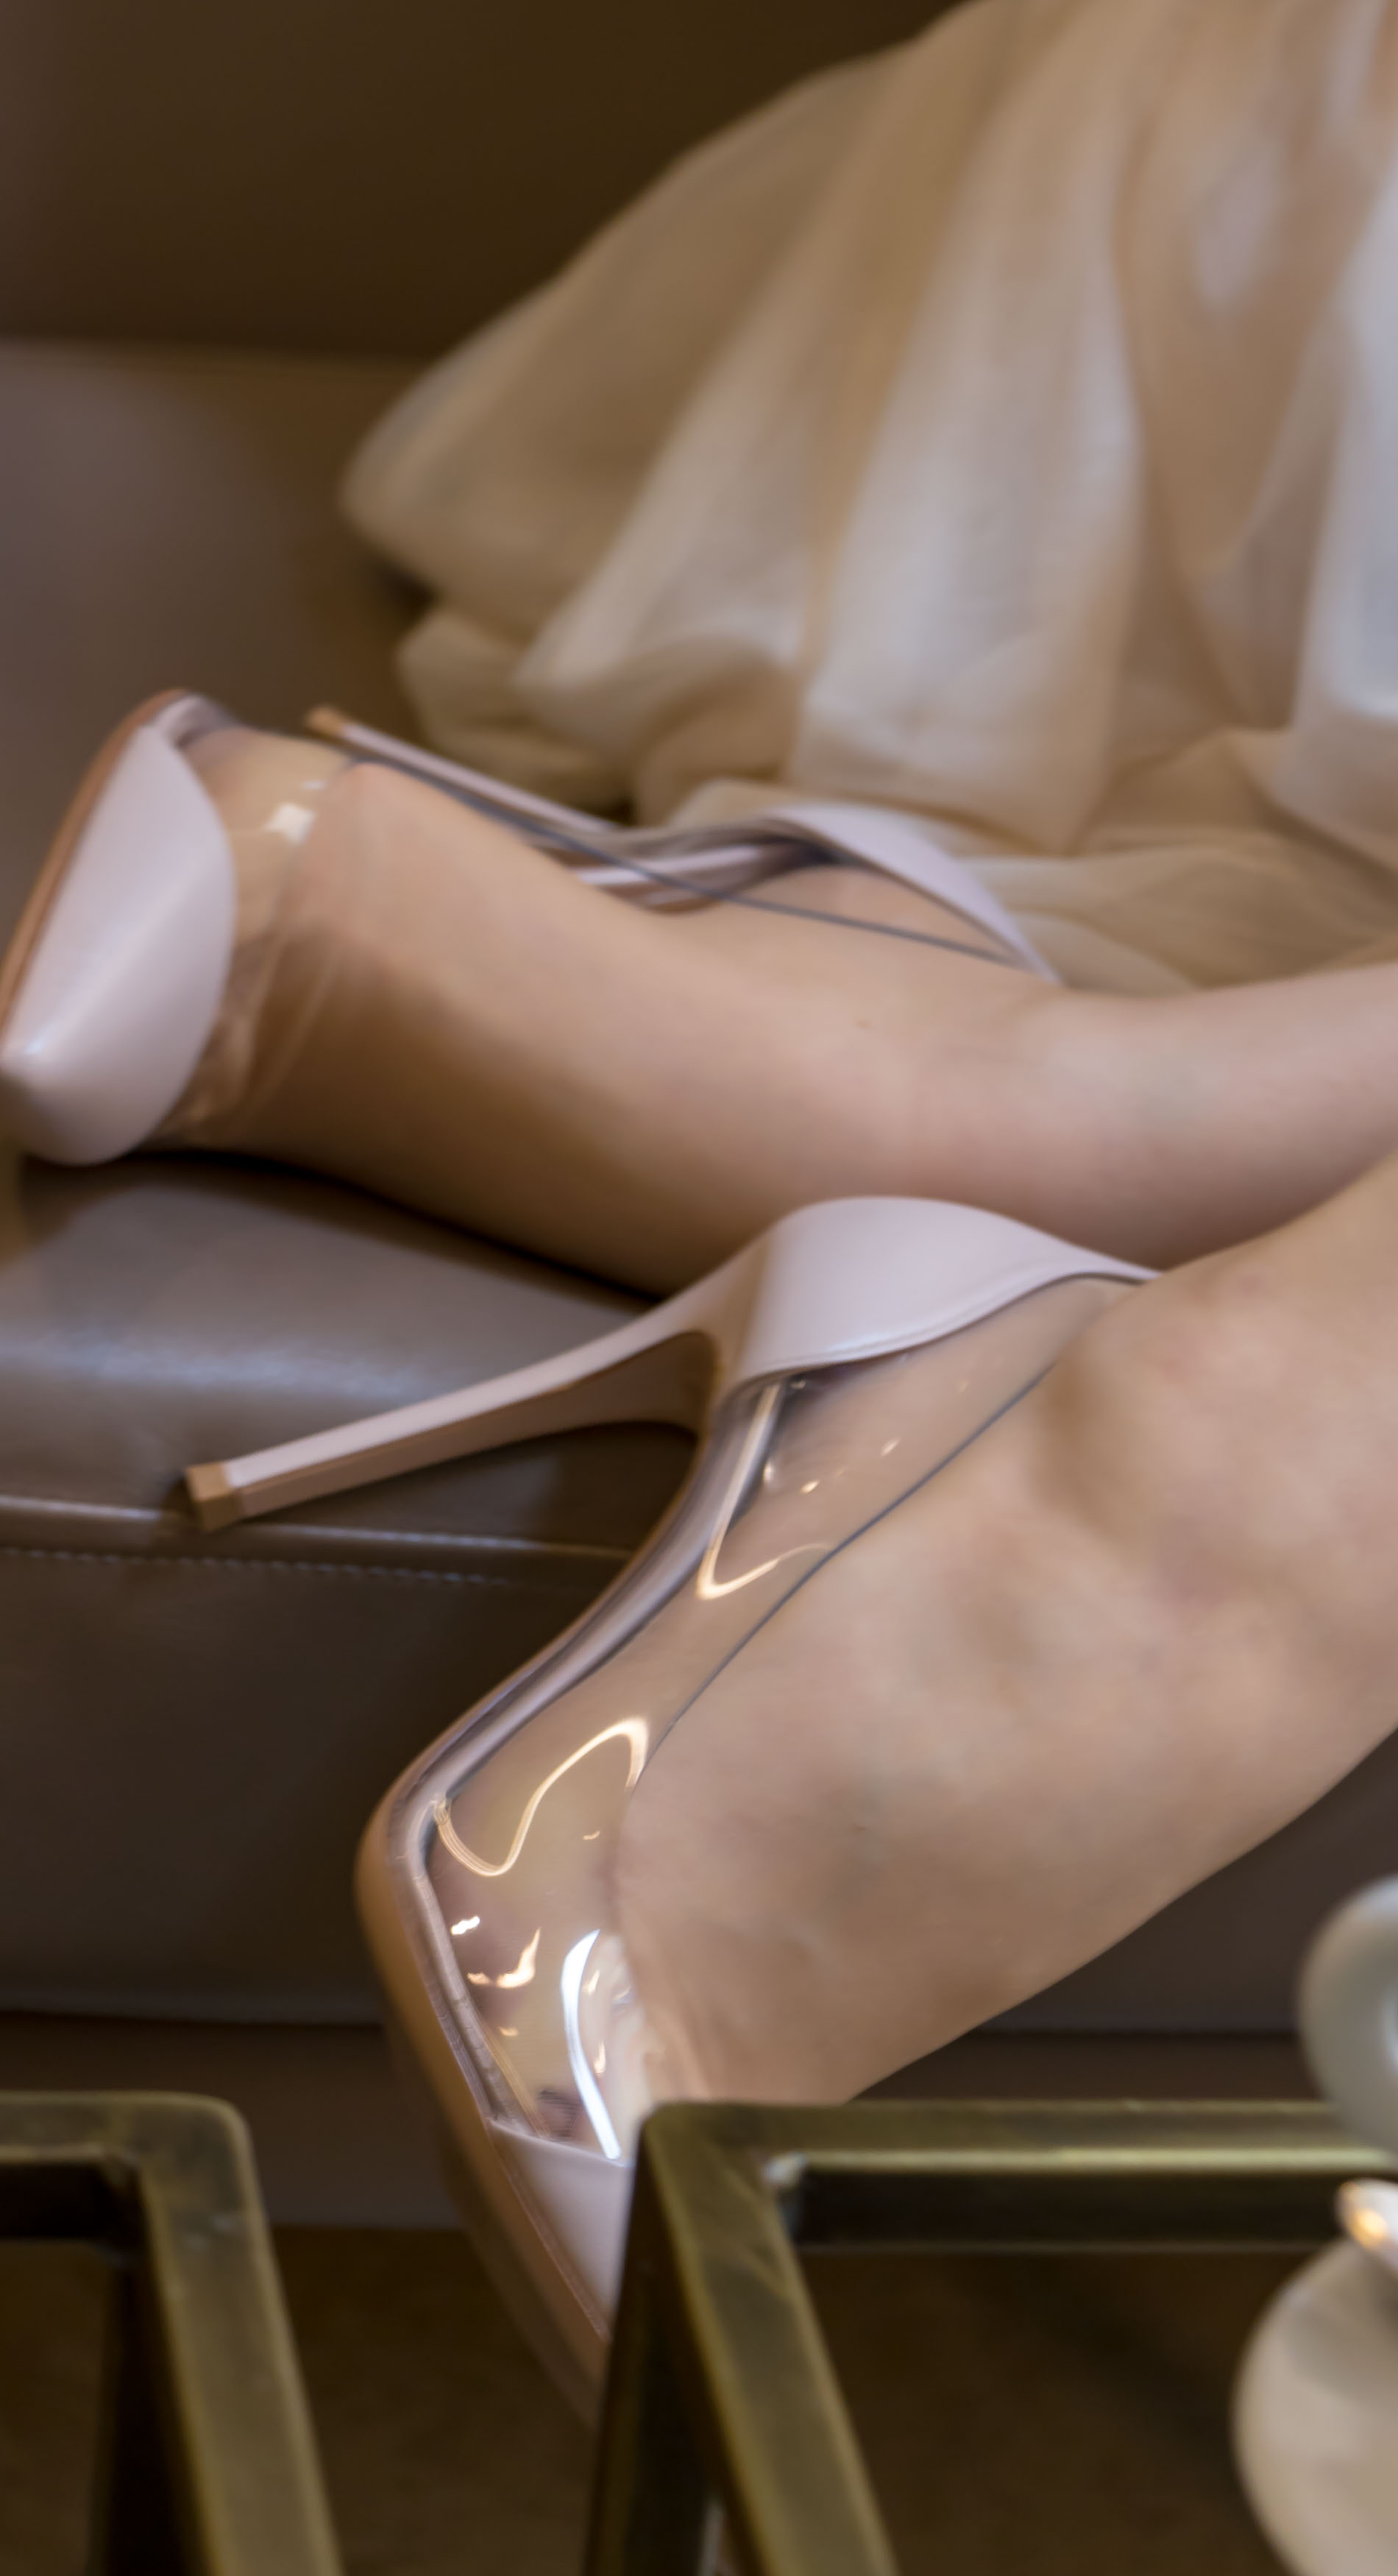 Gianvito Rossi Blush Pink Pumps 100mm Denim covered heel. Pointed denim toe. Transparent sides. Leather sole